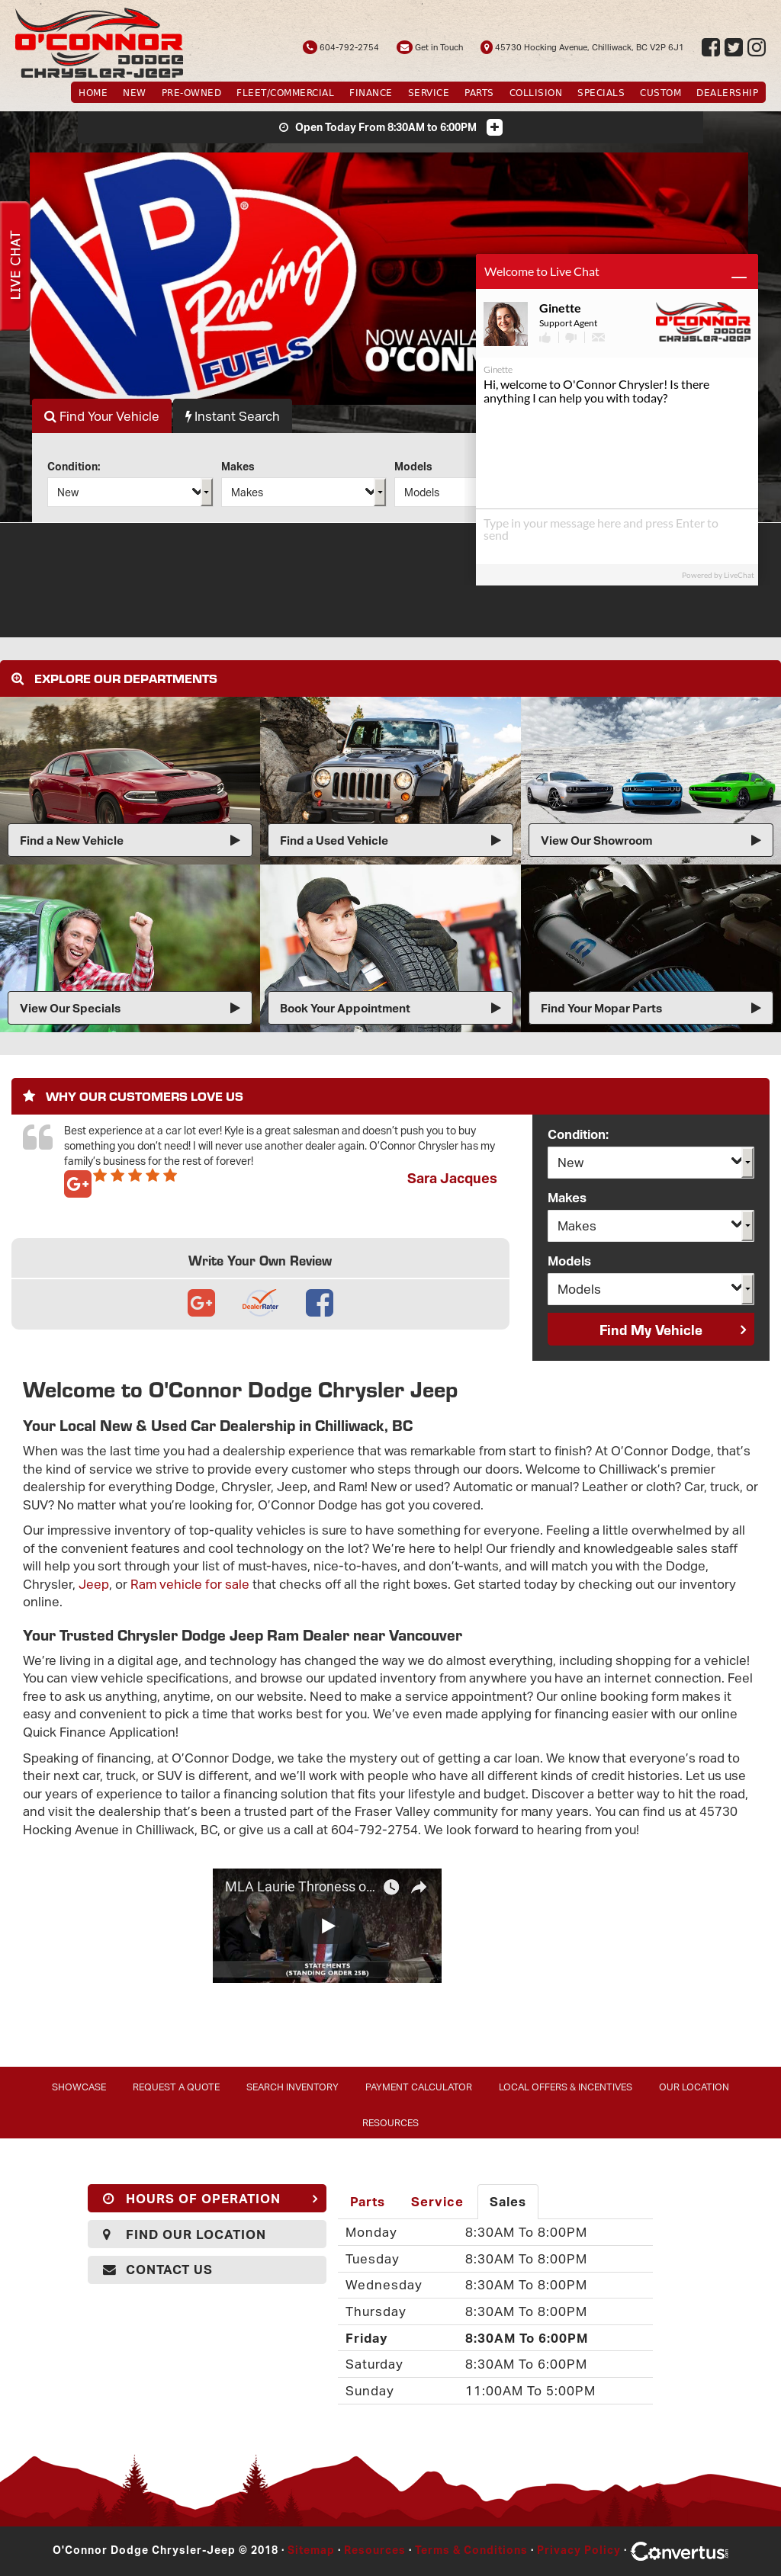 O Connor Chrysler >> O Connor Dodge Chrysler Jeep Competitors Revenue And Employees